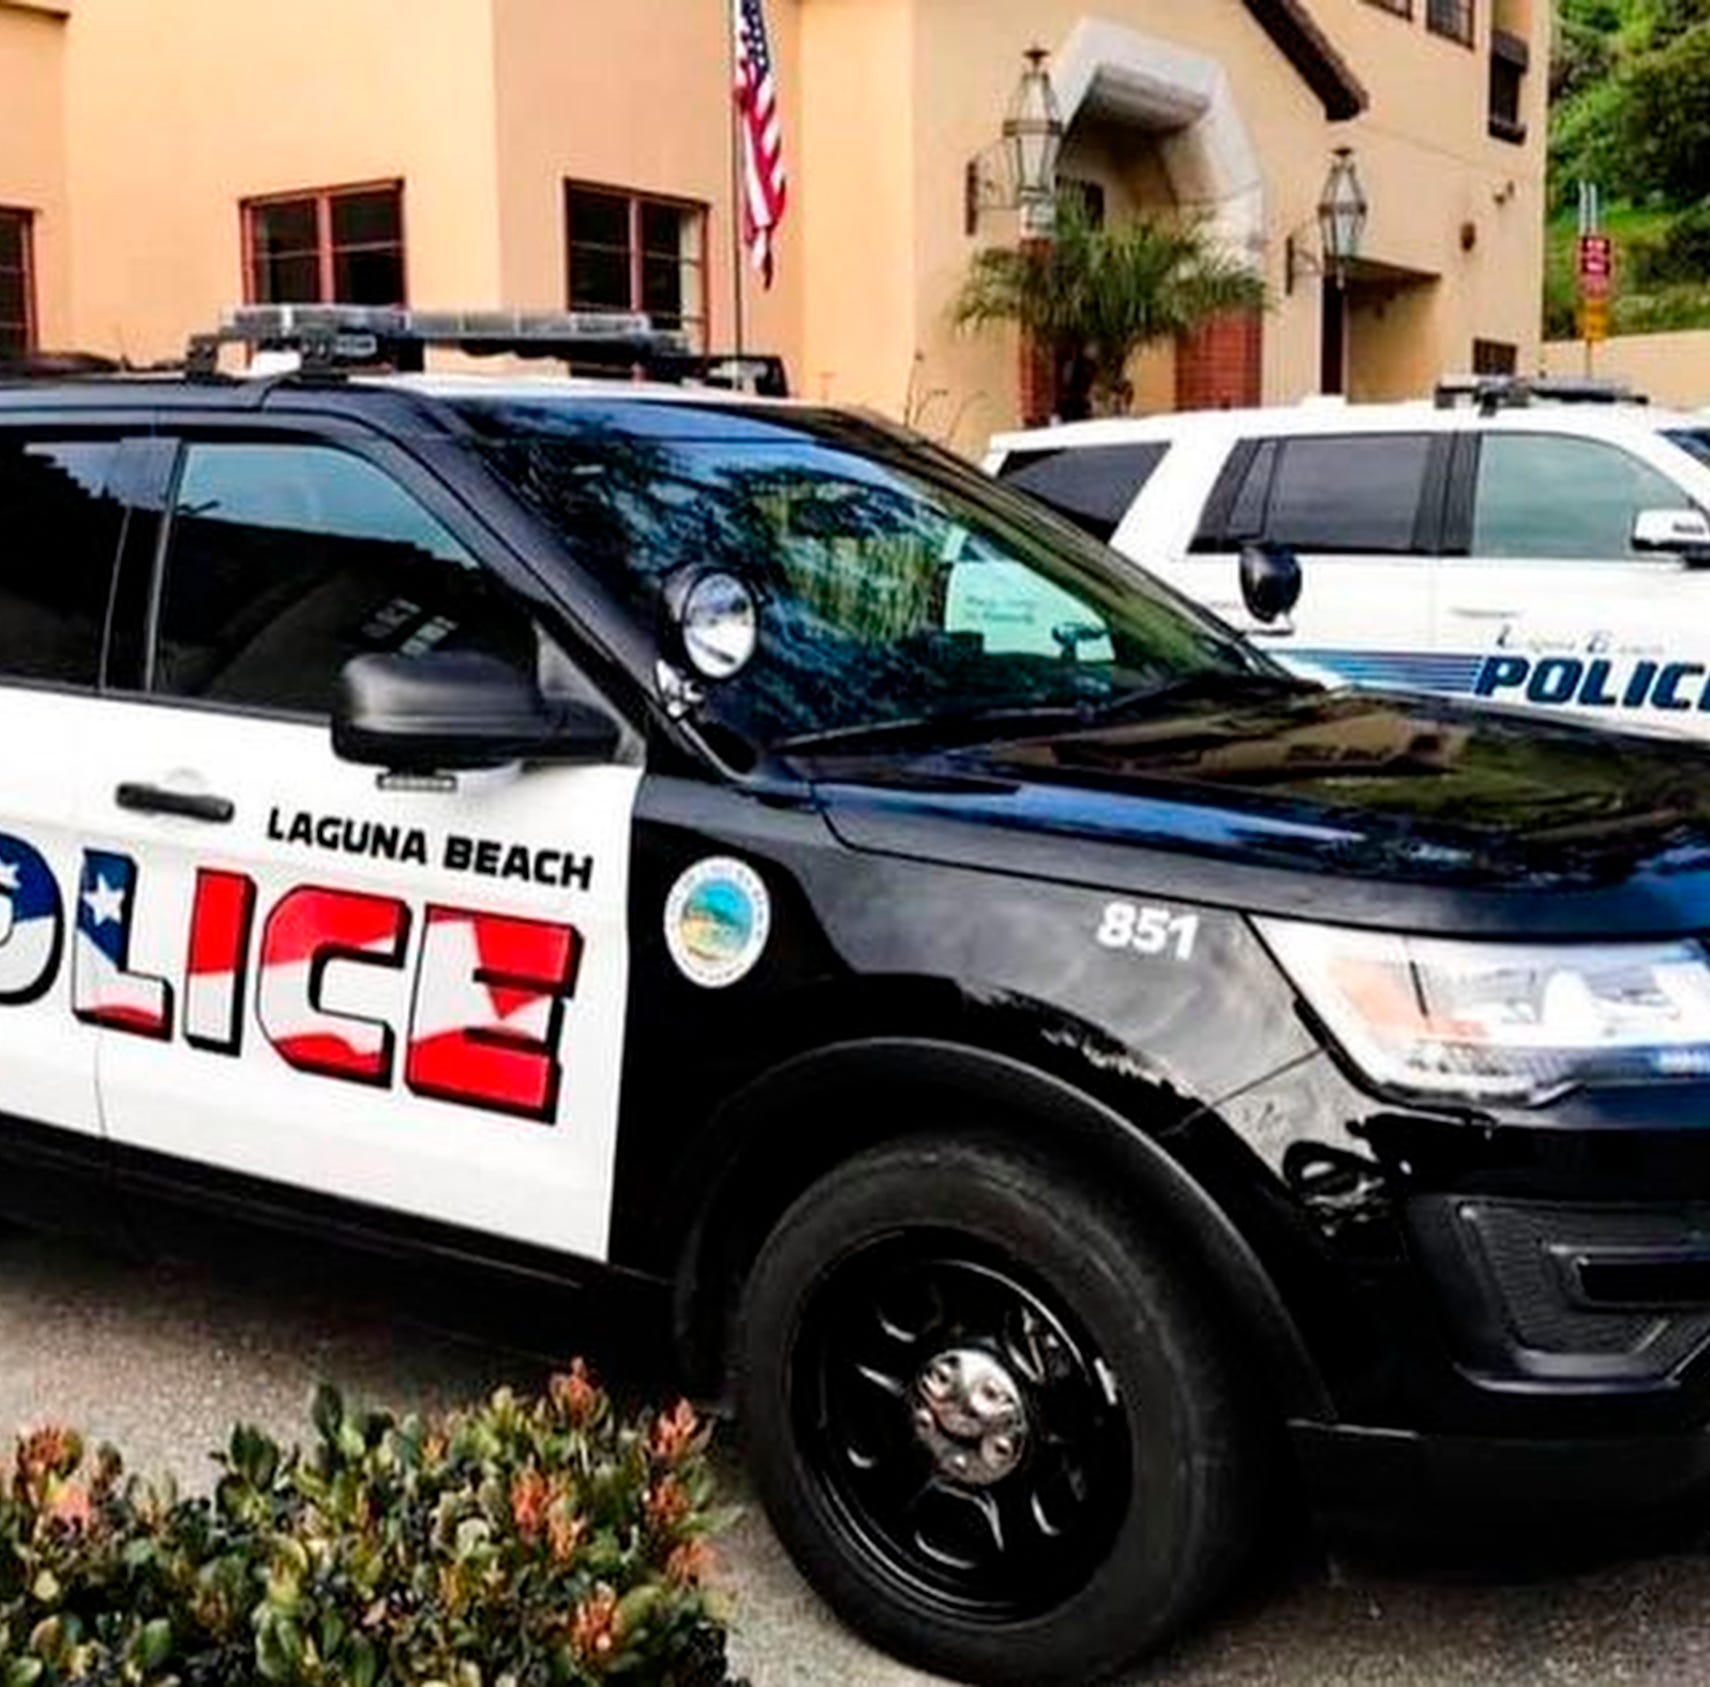 American flag graphic on police cars divides Laguna Beach